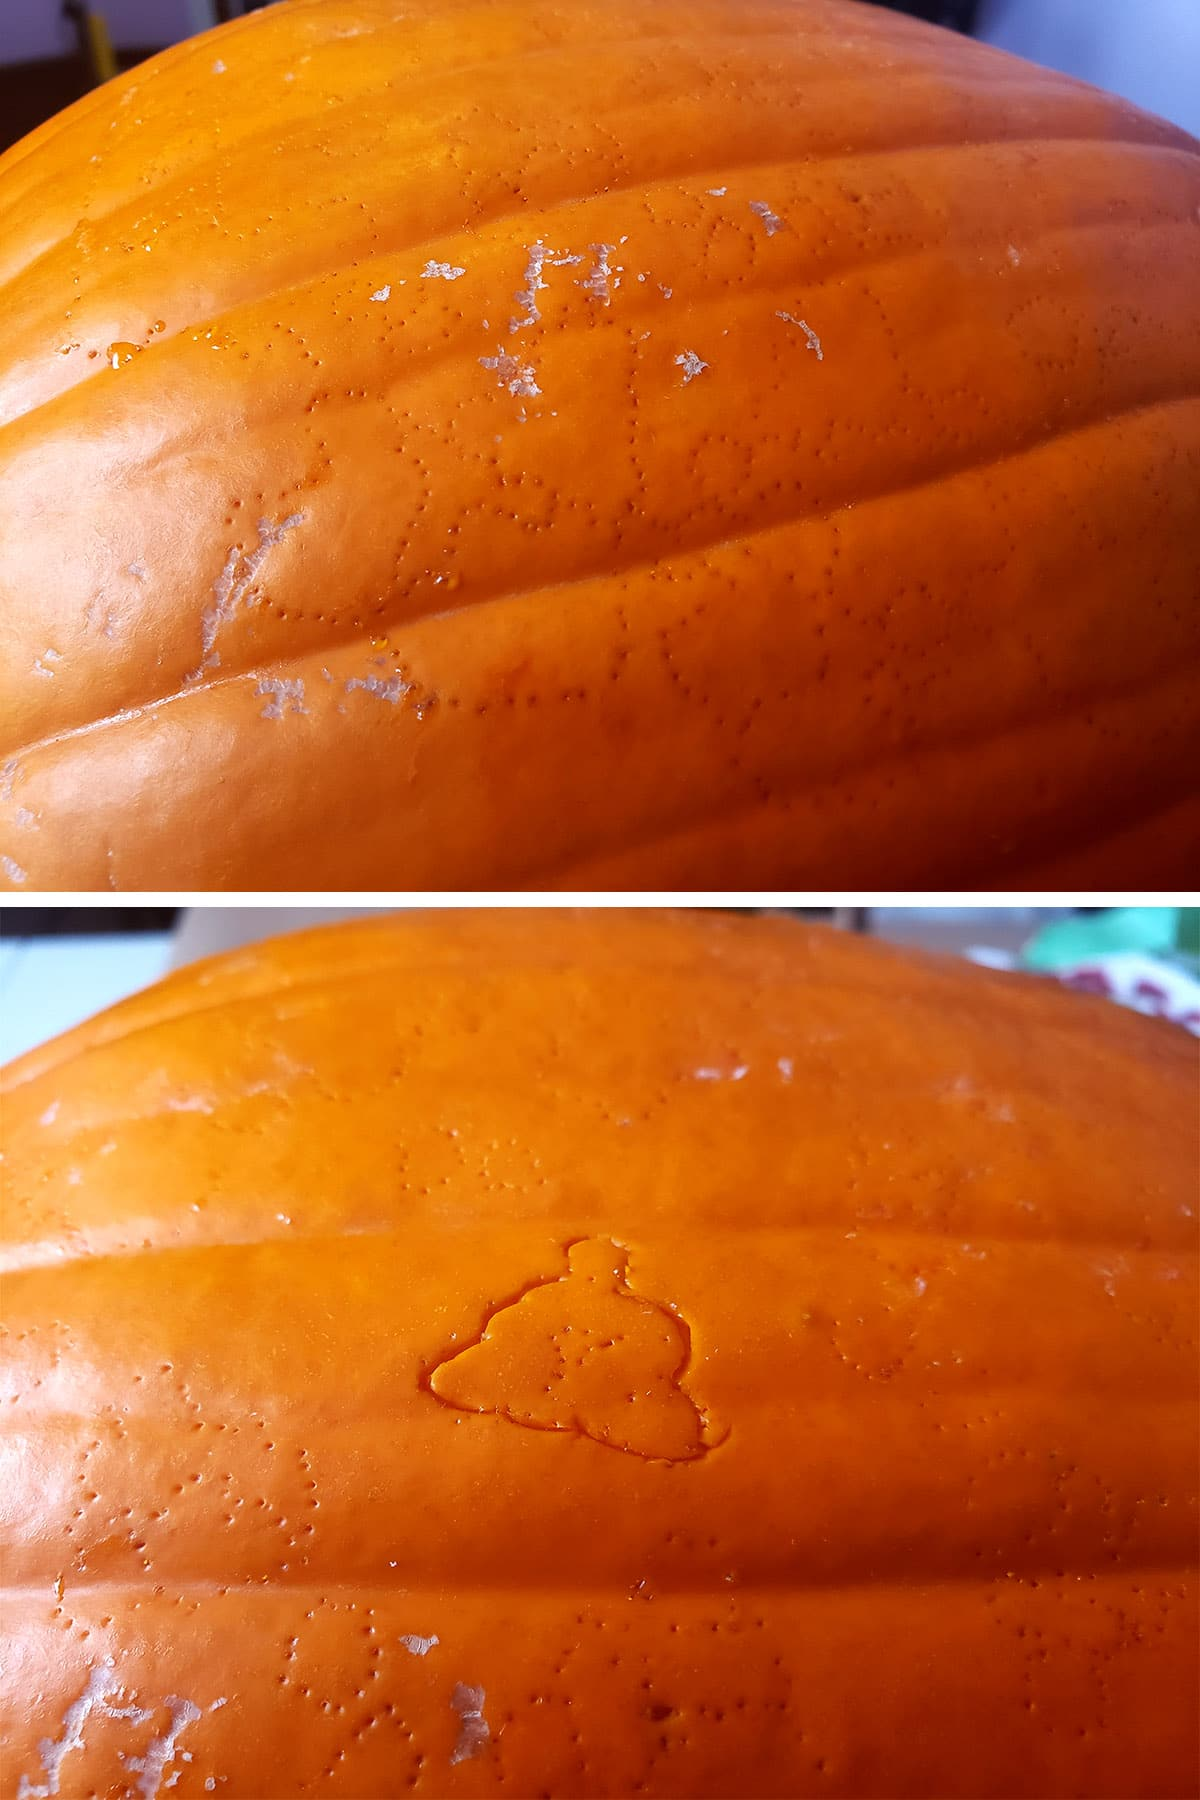 A close up view of the pumpkin with the covid particle design outlined on it in pin pricks.